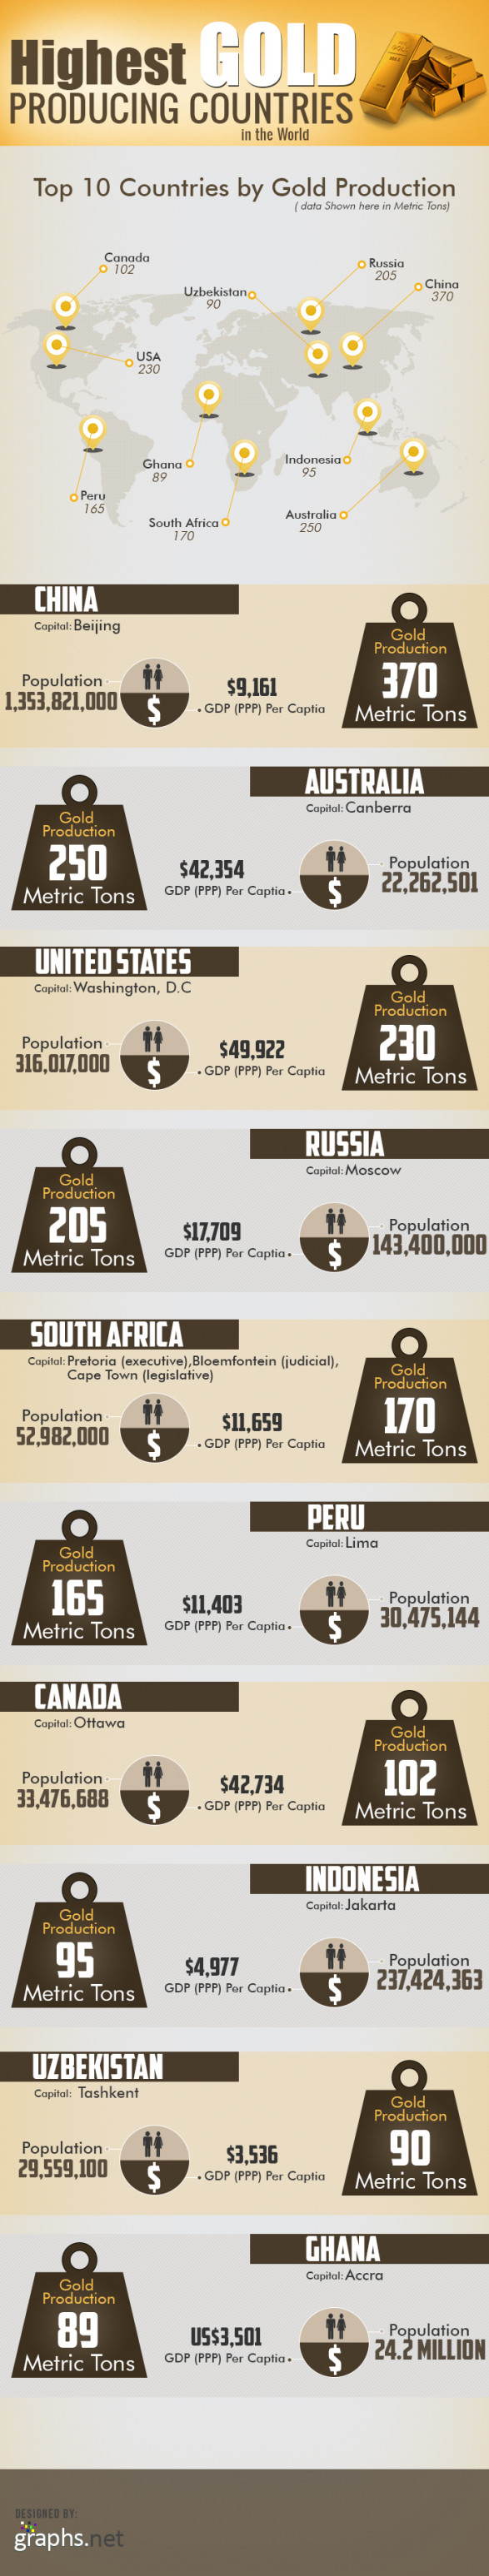 World�s gold producing countries